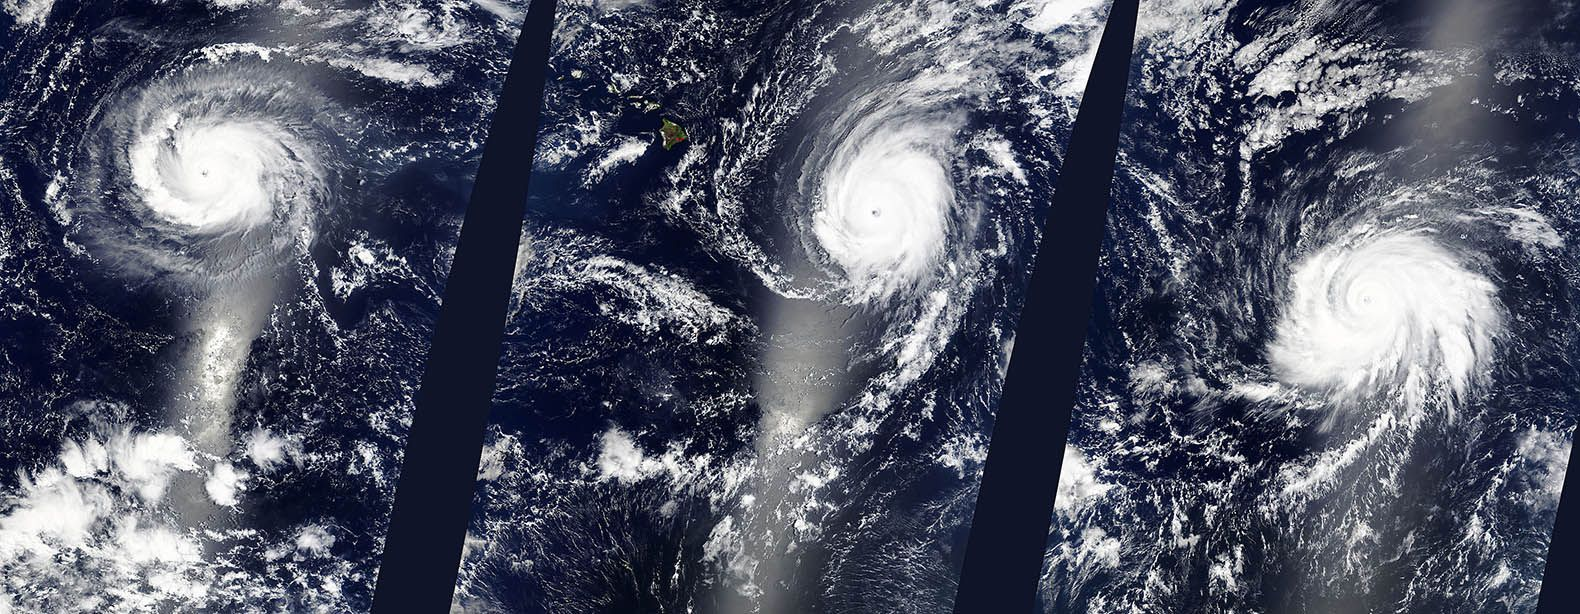 Three Category 4 Hurricanes Developed In The Pacific Simultaneously For The First Time In Recorded History Pacific Ocean Hurricane Weather Patterns